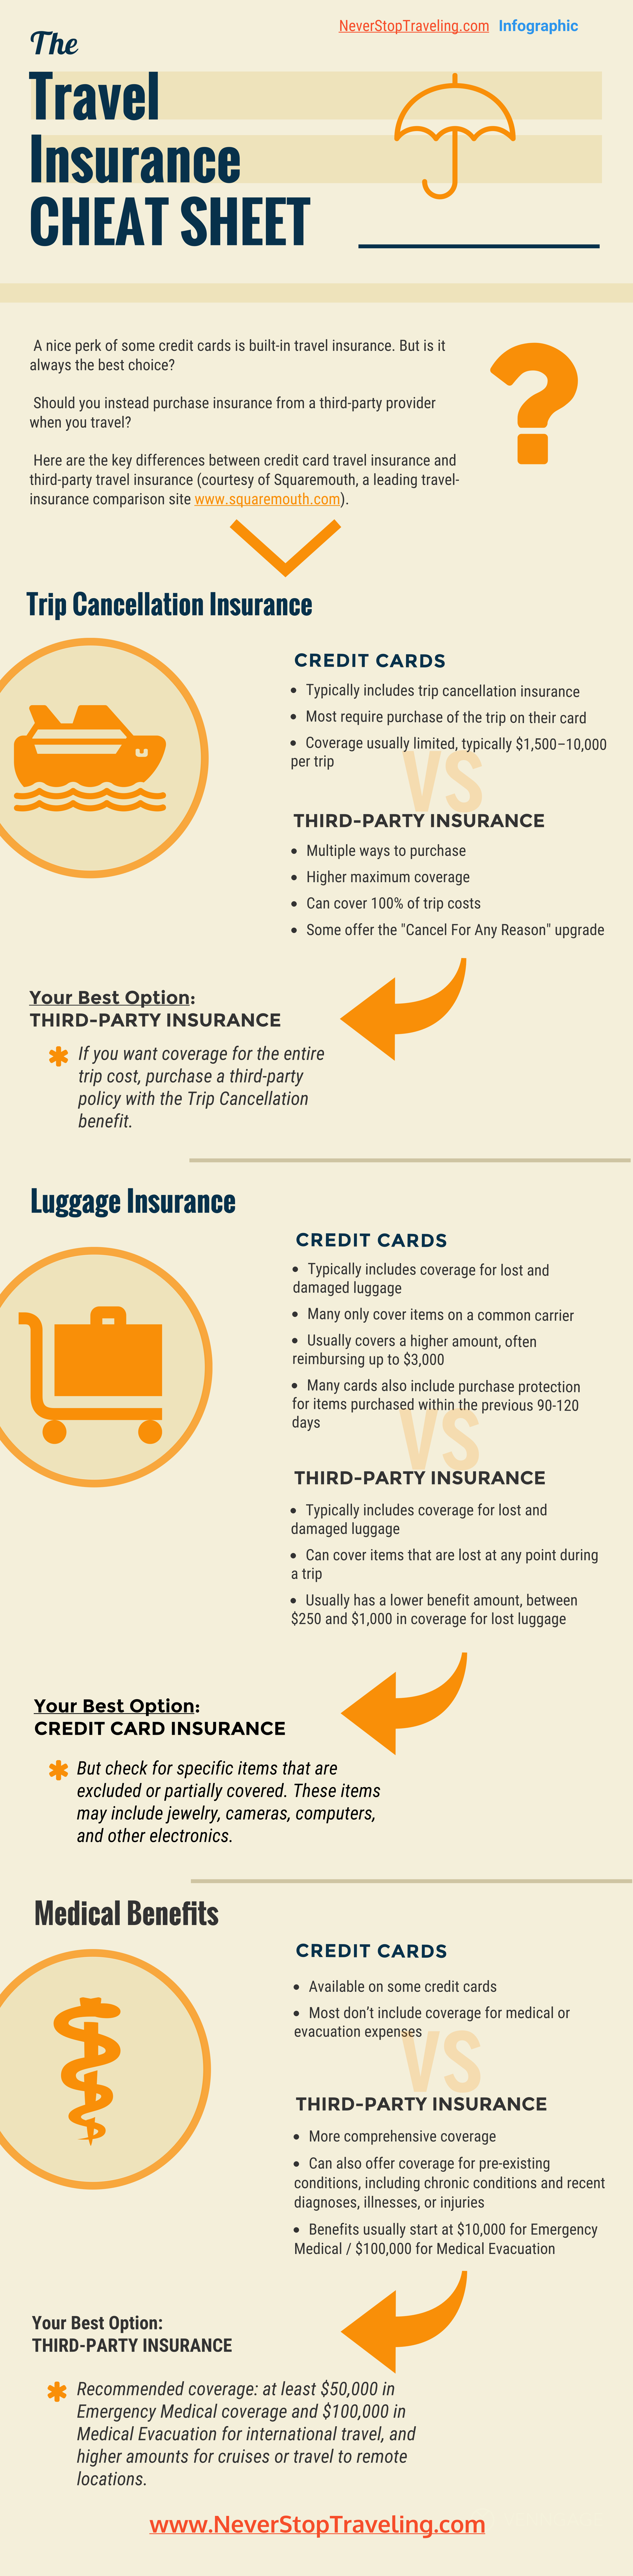 Infograhic: The Travel Insurance Cheat Sheet